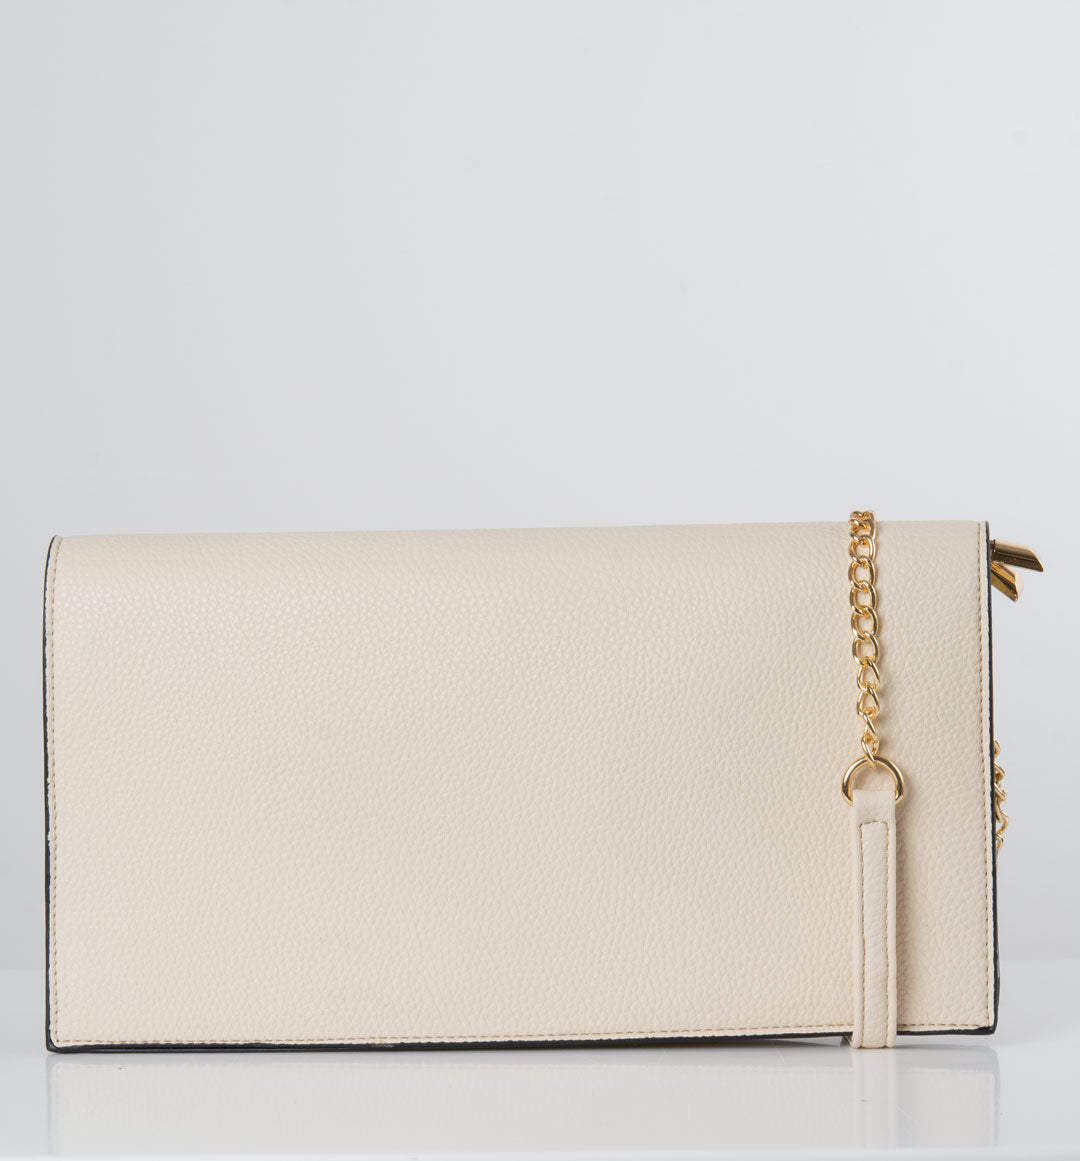 an image showing a cream shoulder bag